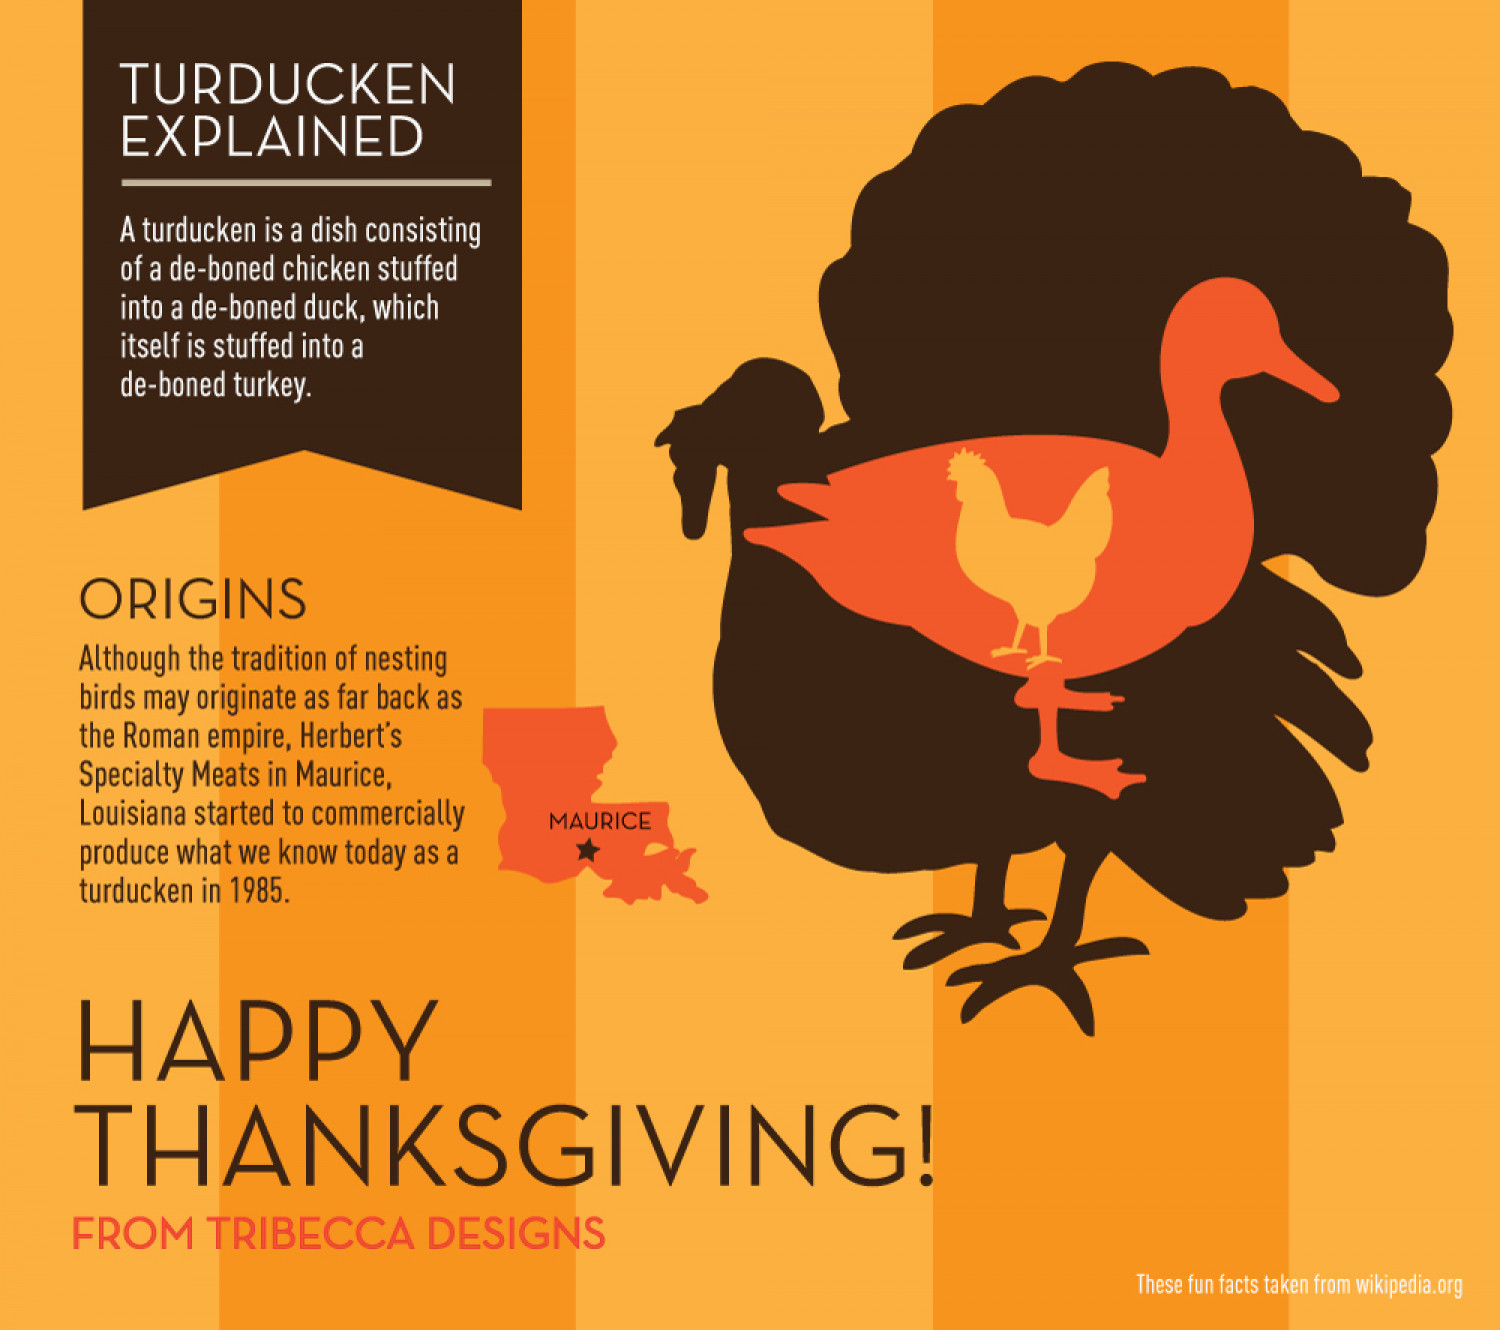 Turducken Explained Infographic